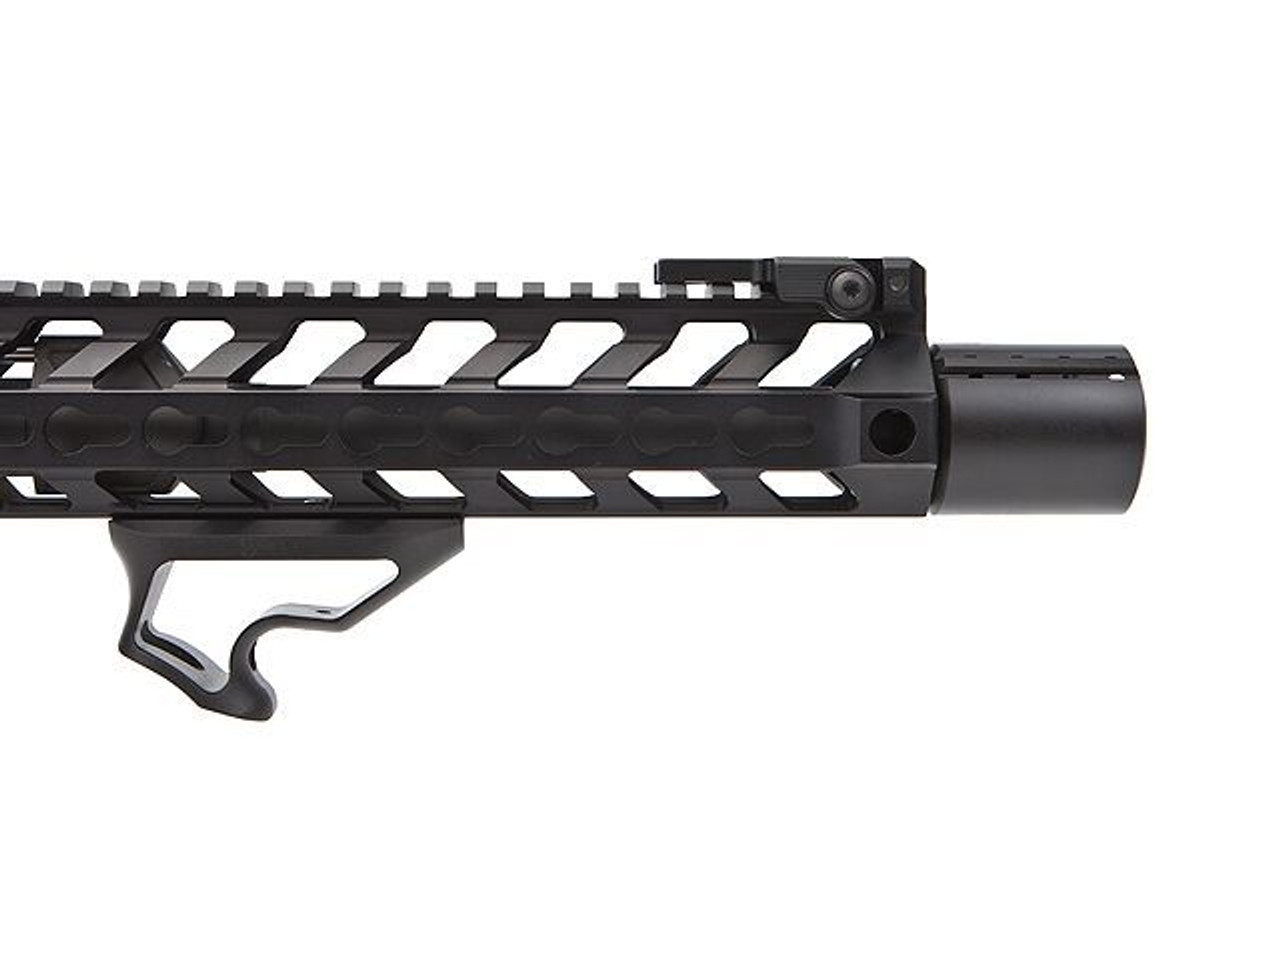 Fortis Control Shield and Muzzle Brake 5.56 - Bundle Pack